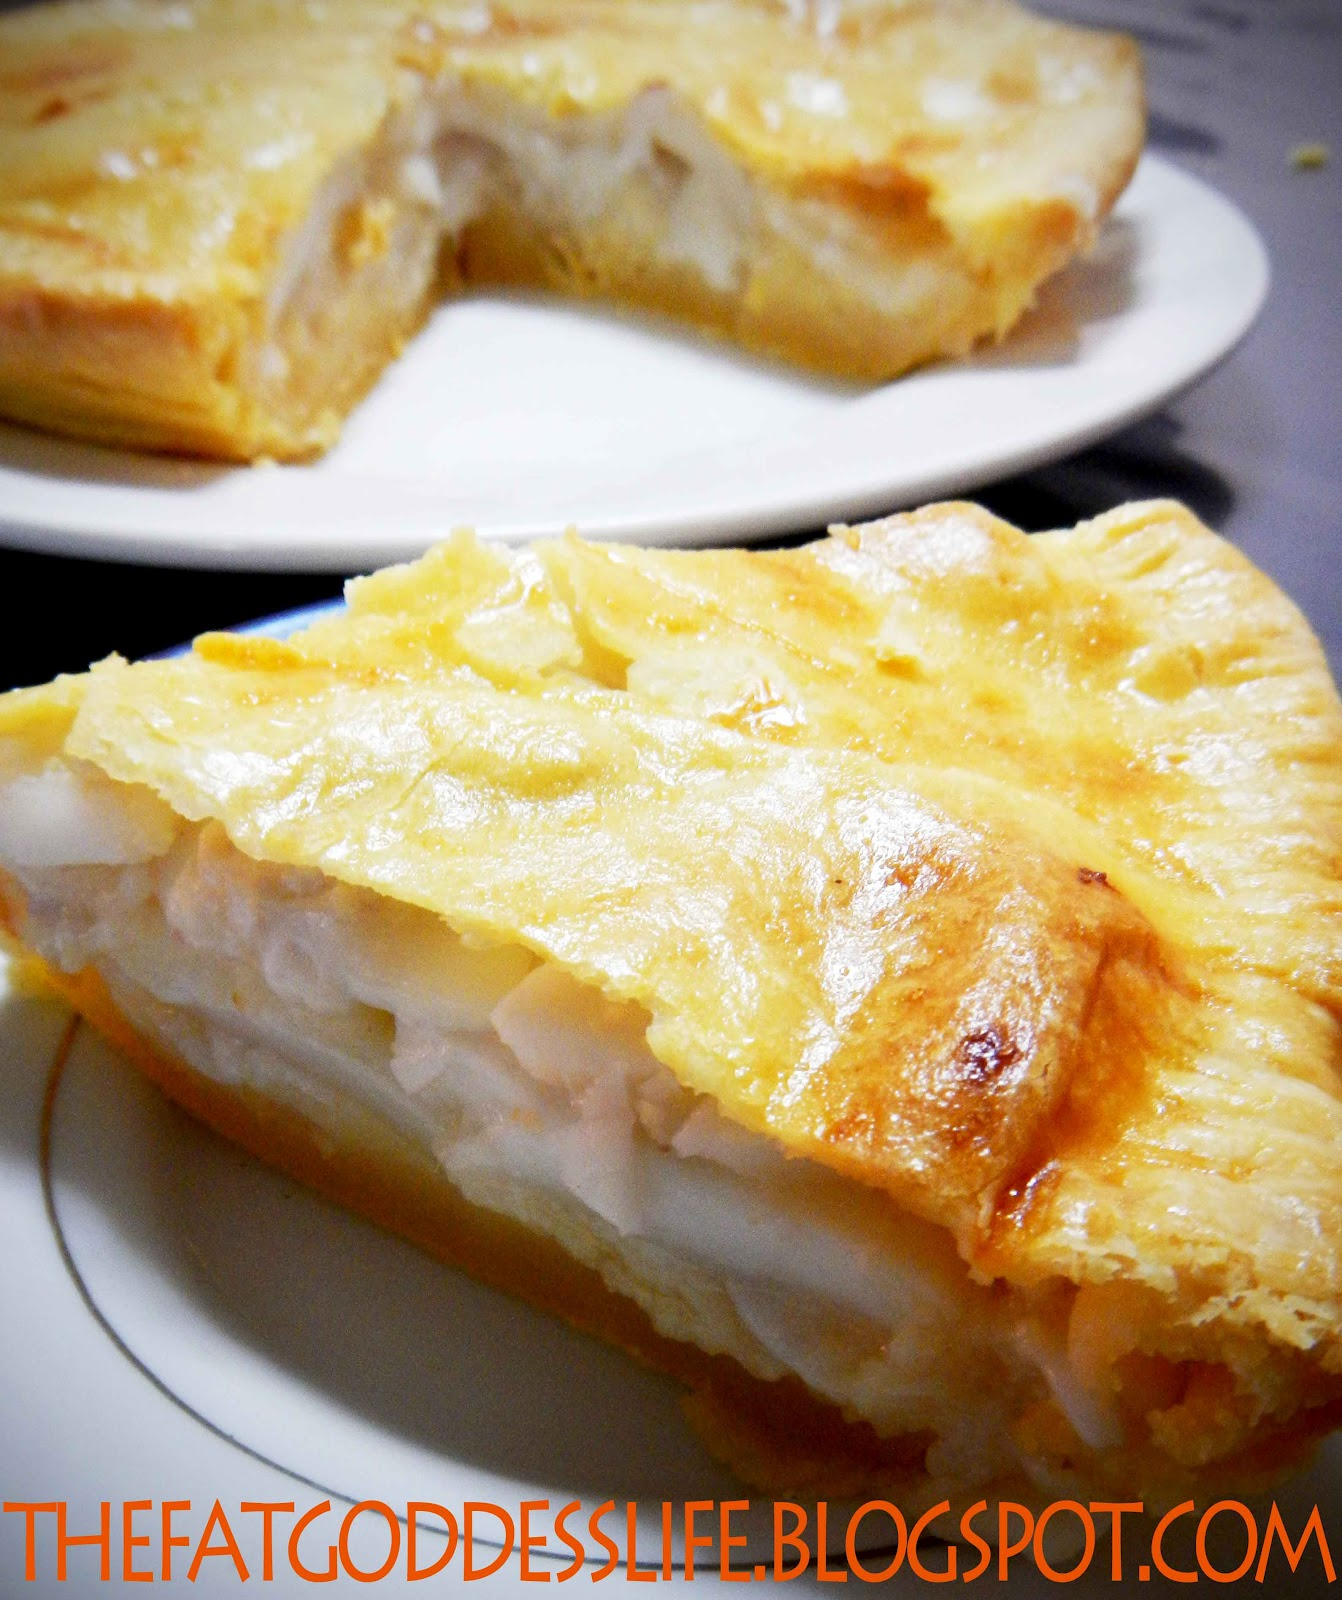 buko pie I made your buko pie yesterday, it was an instant hit it was really scrumptious and easy to make thank you for sharing the recipe and for the beautiful photos.